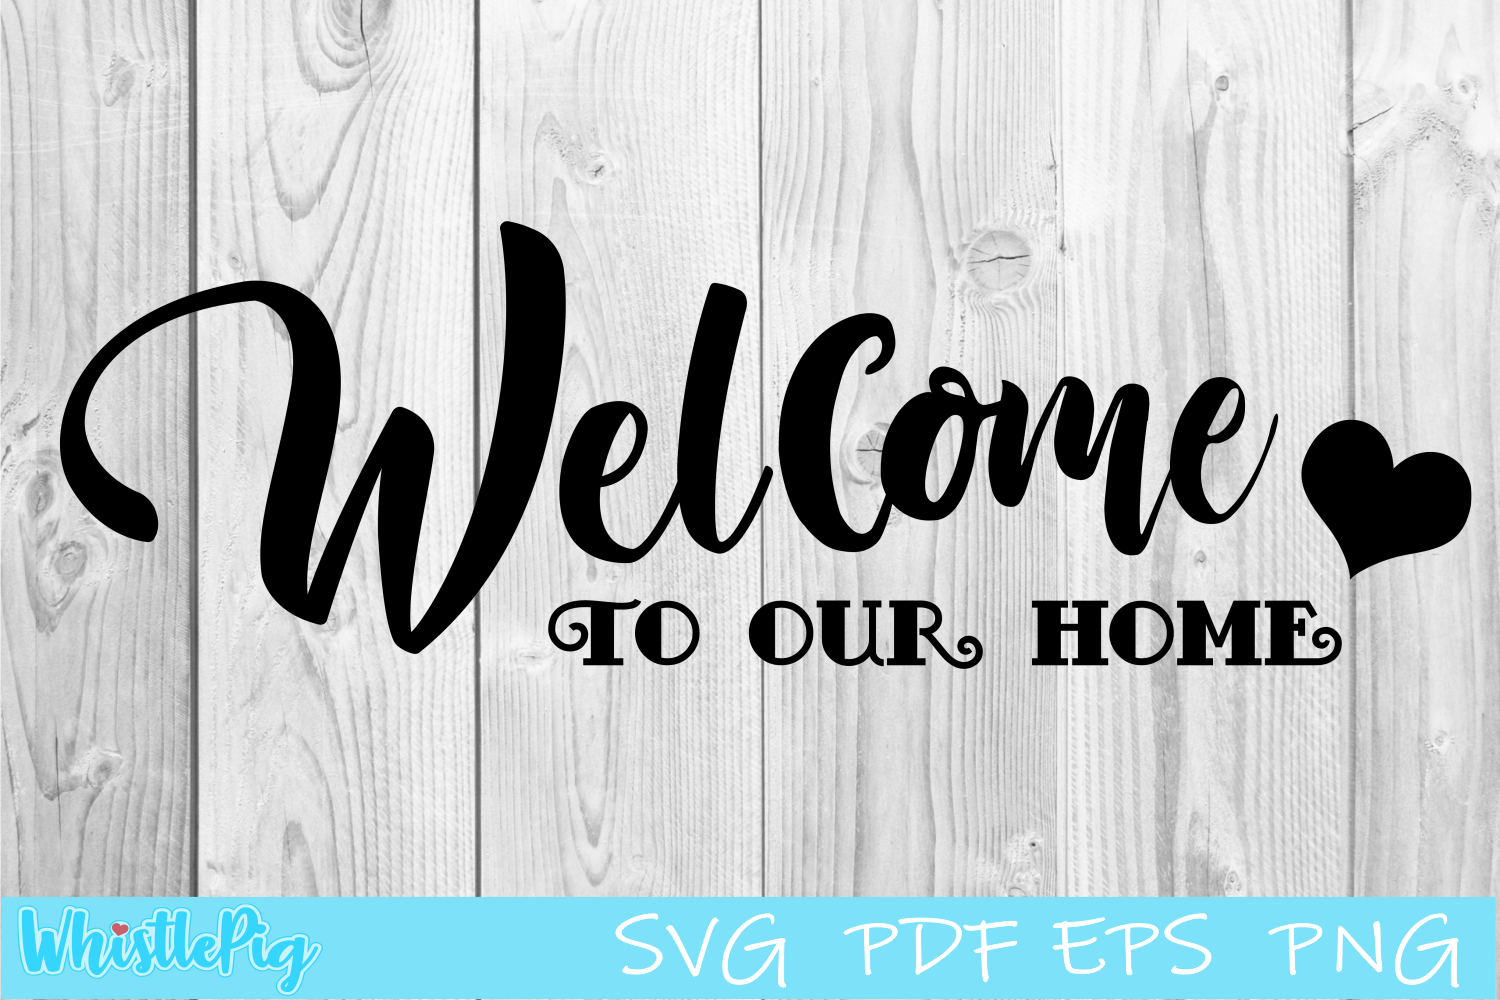 Welcome To Our Home - SVG Cut File - Welcome Sign SVG example image 1